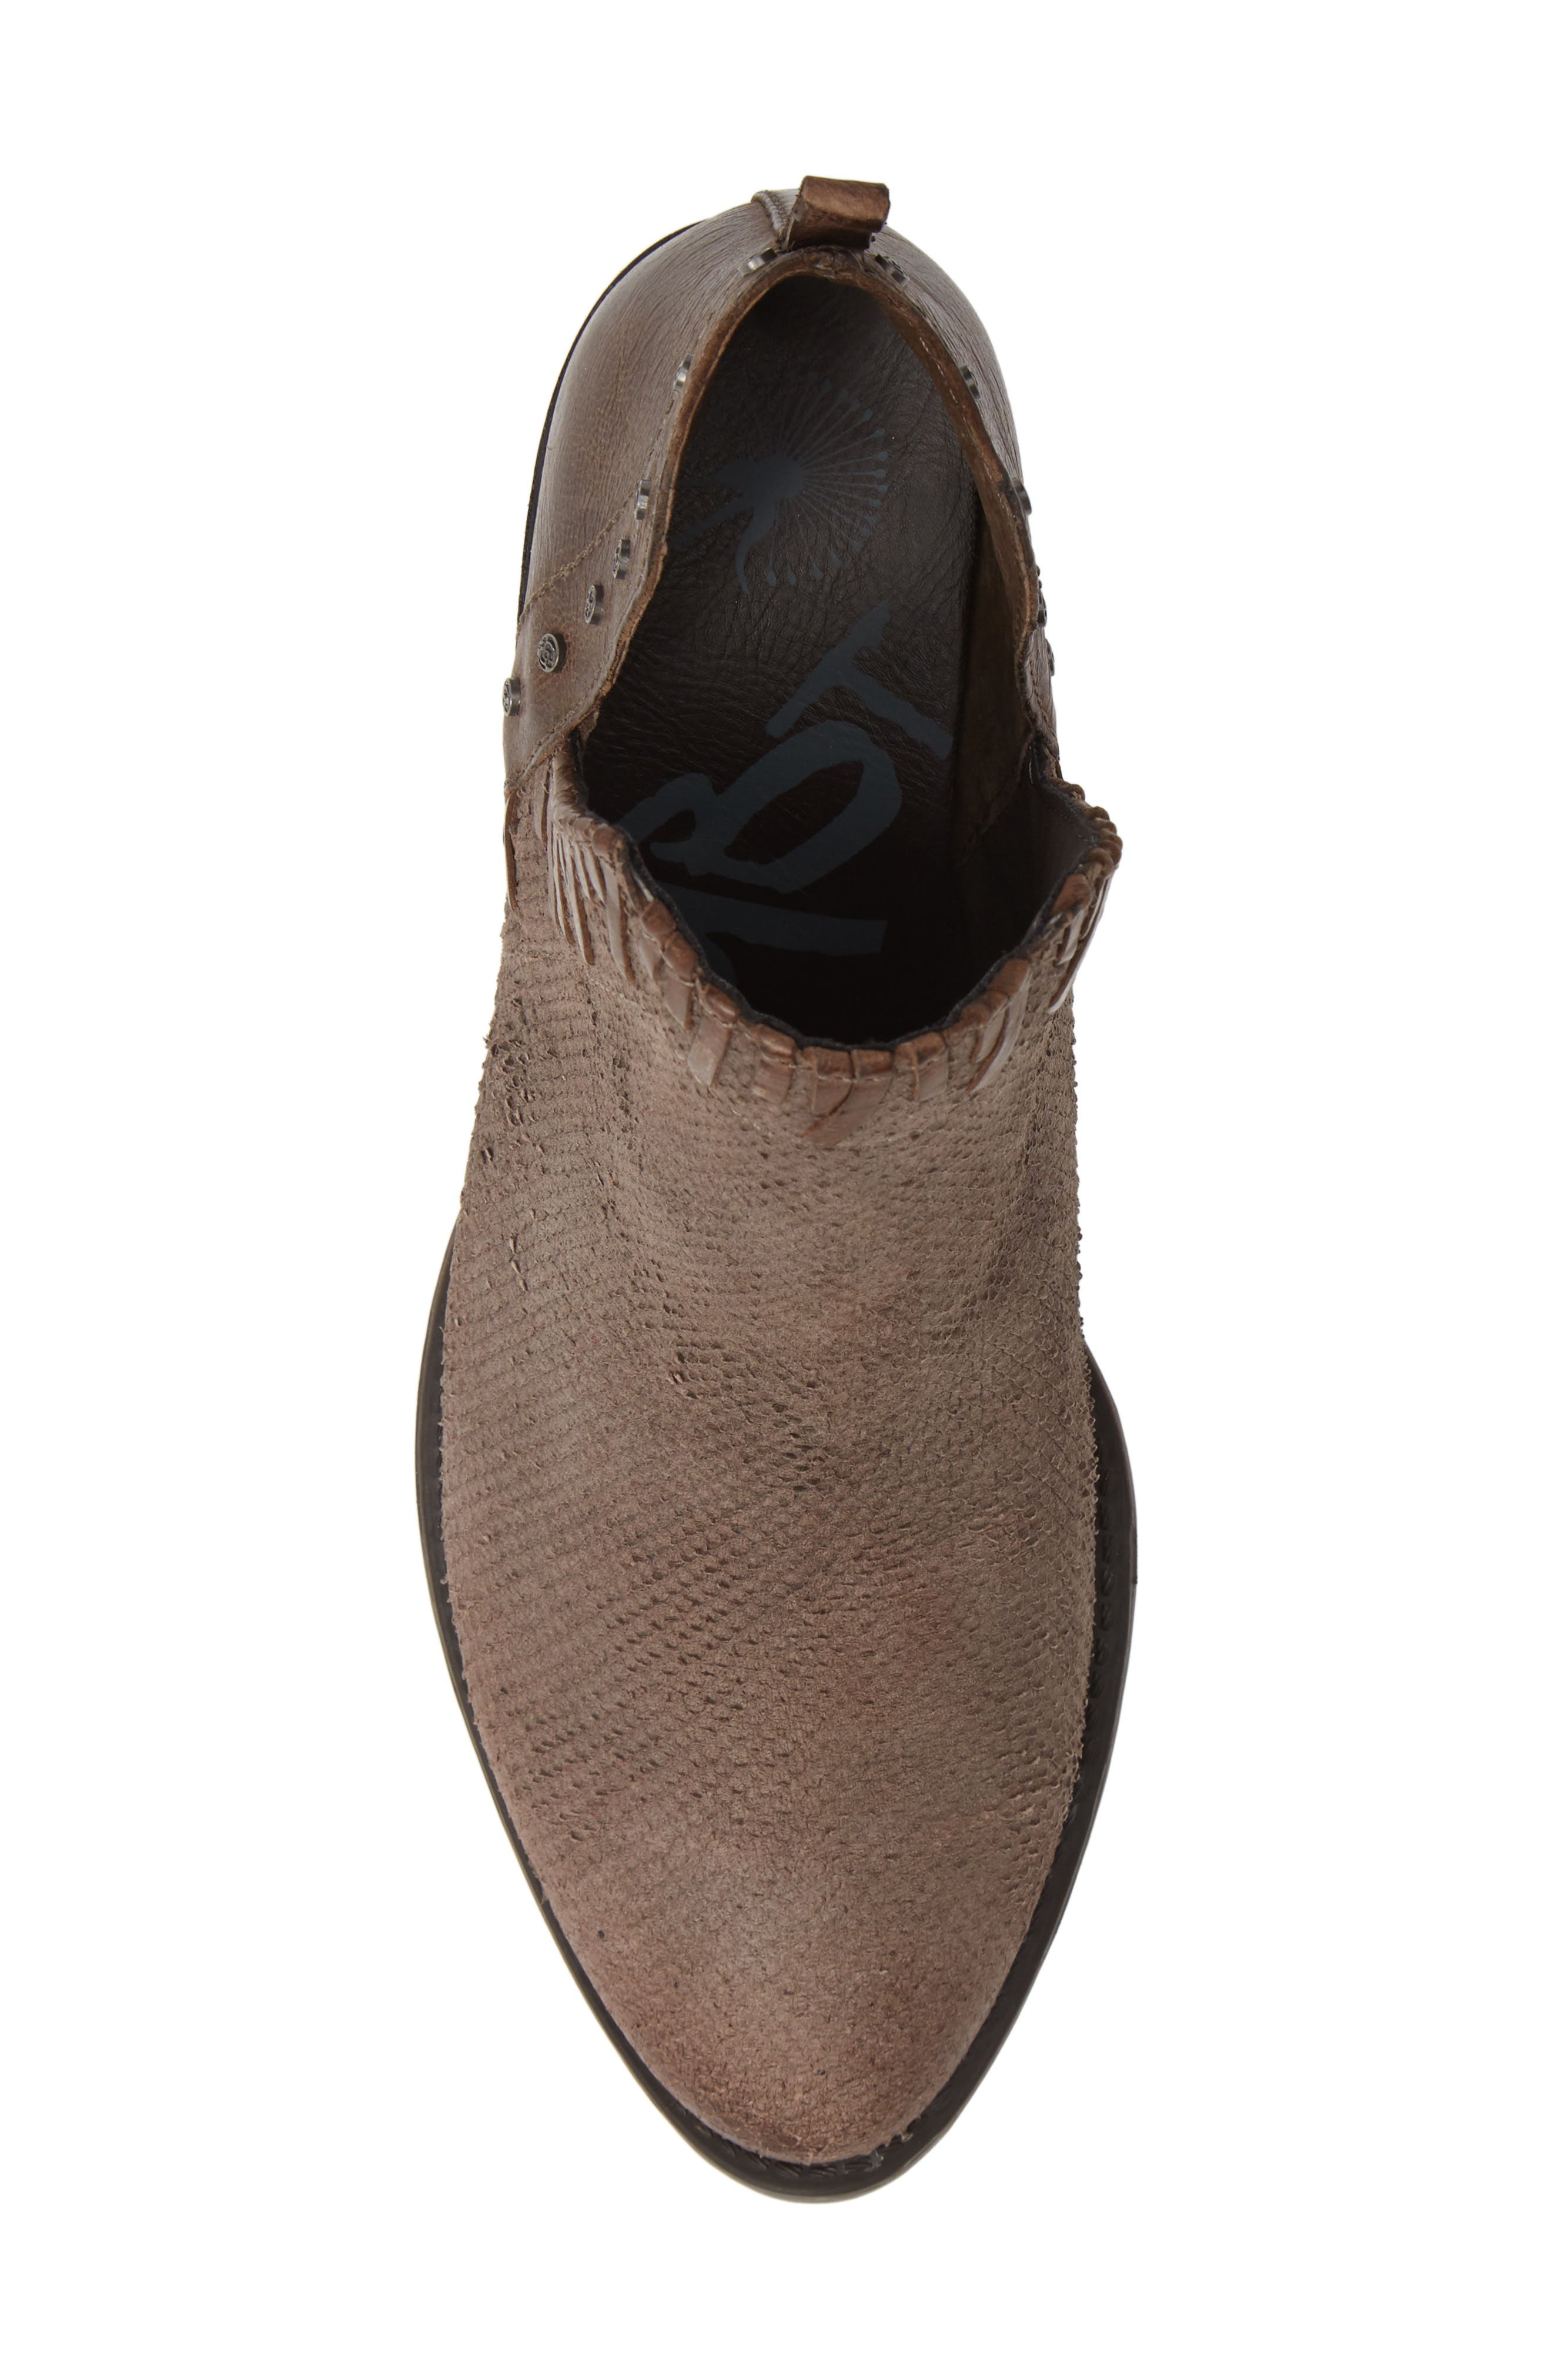 Santa Fe Ankle Bootie,                             Alternate thumbnail 5, color,                             CINDER LEATHER